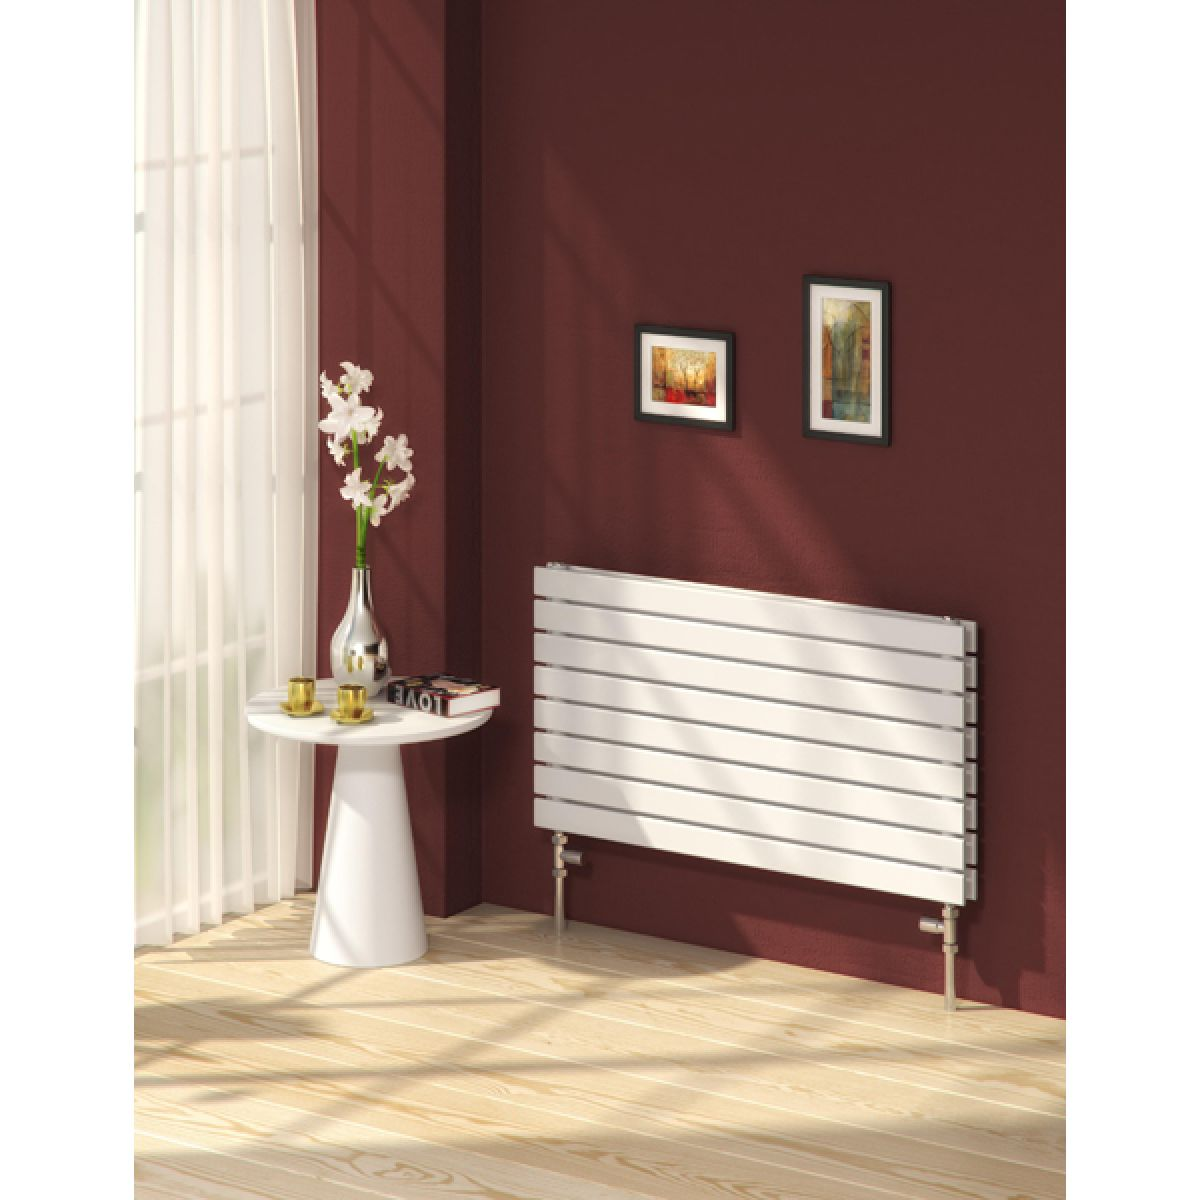 Reina Rione Double Electric Horizontal Radiator 550 x 400mm in White